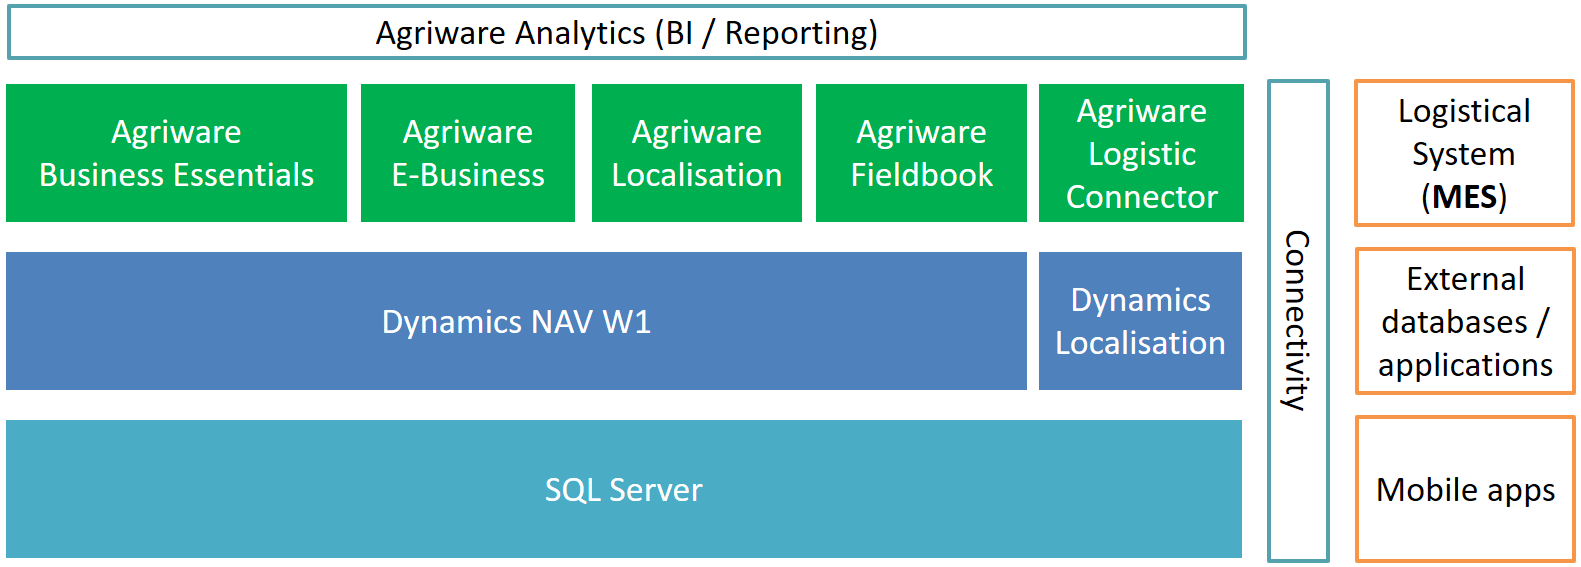 Agriware addon structure for Microsoft Dynamics NAV support for Agriculture; Agriware; Dynamics NAV; Add-on; Horticulture; Agriculture; Software Structure